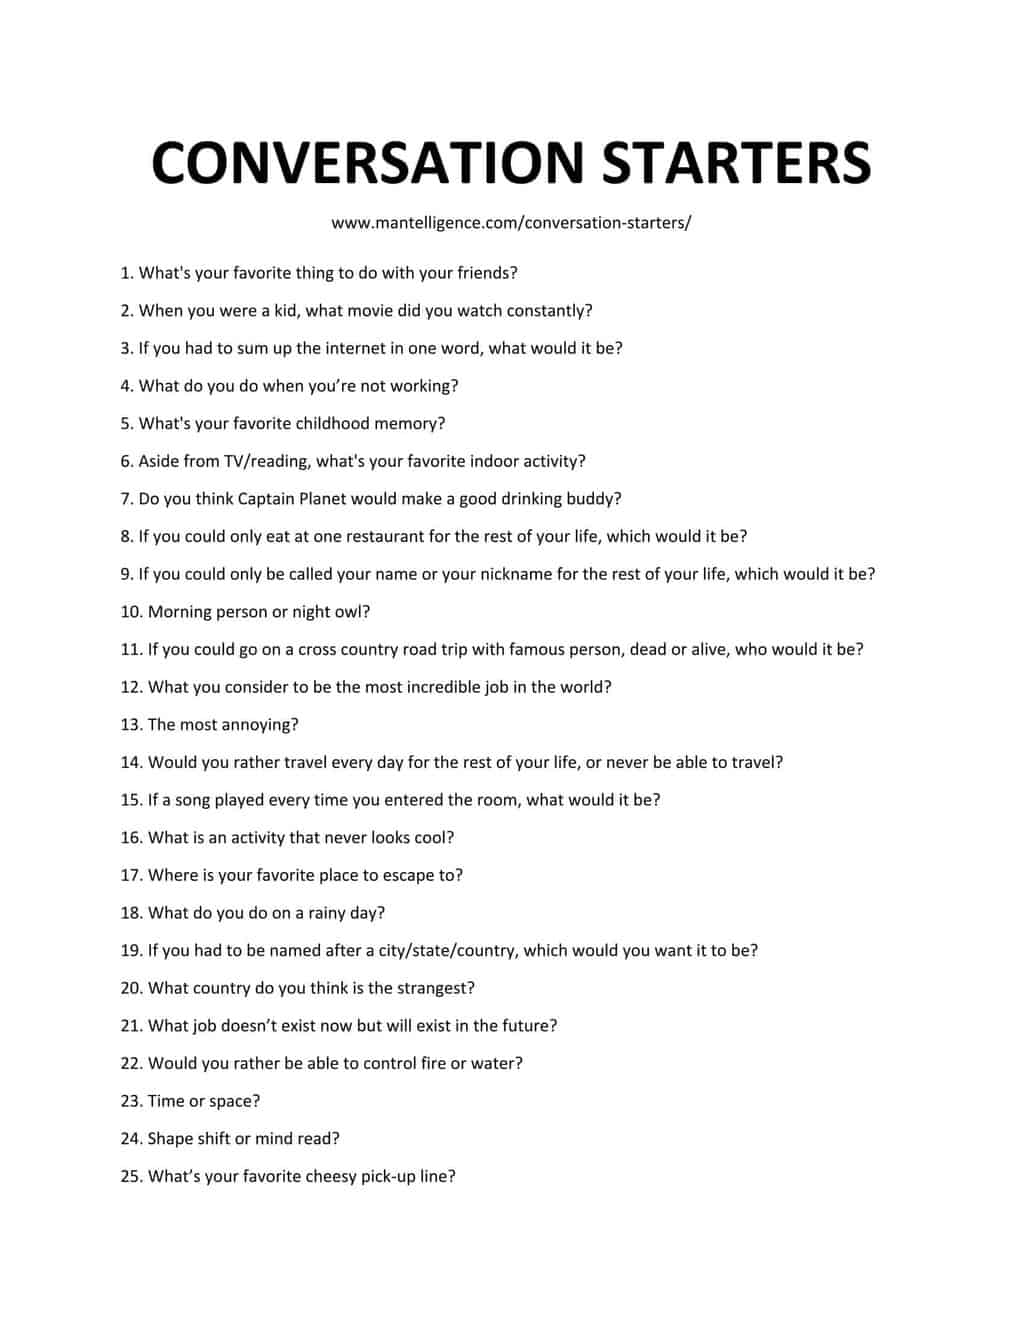 Downloadable and Printable List of Conversation Starters as jpg or pdf